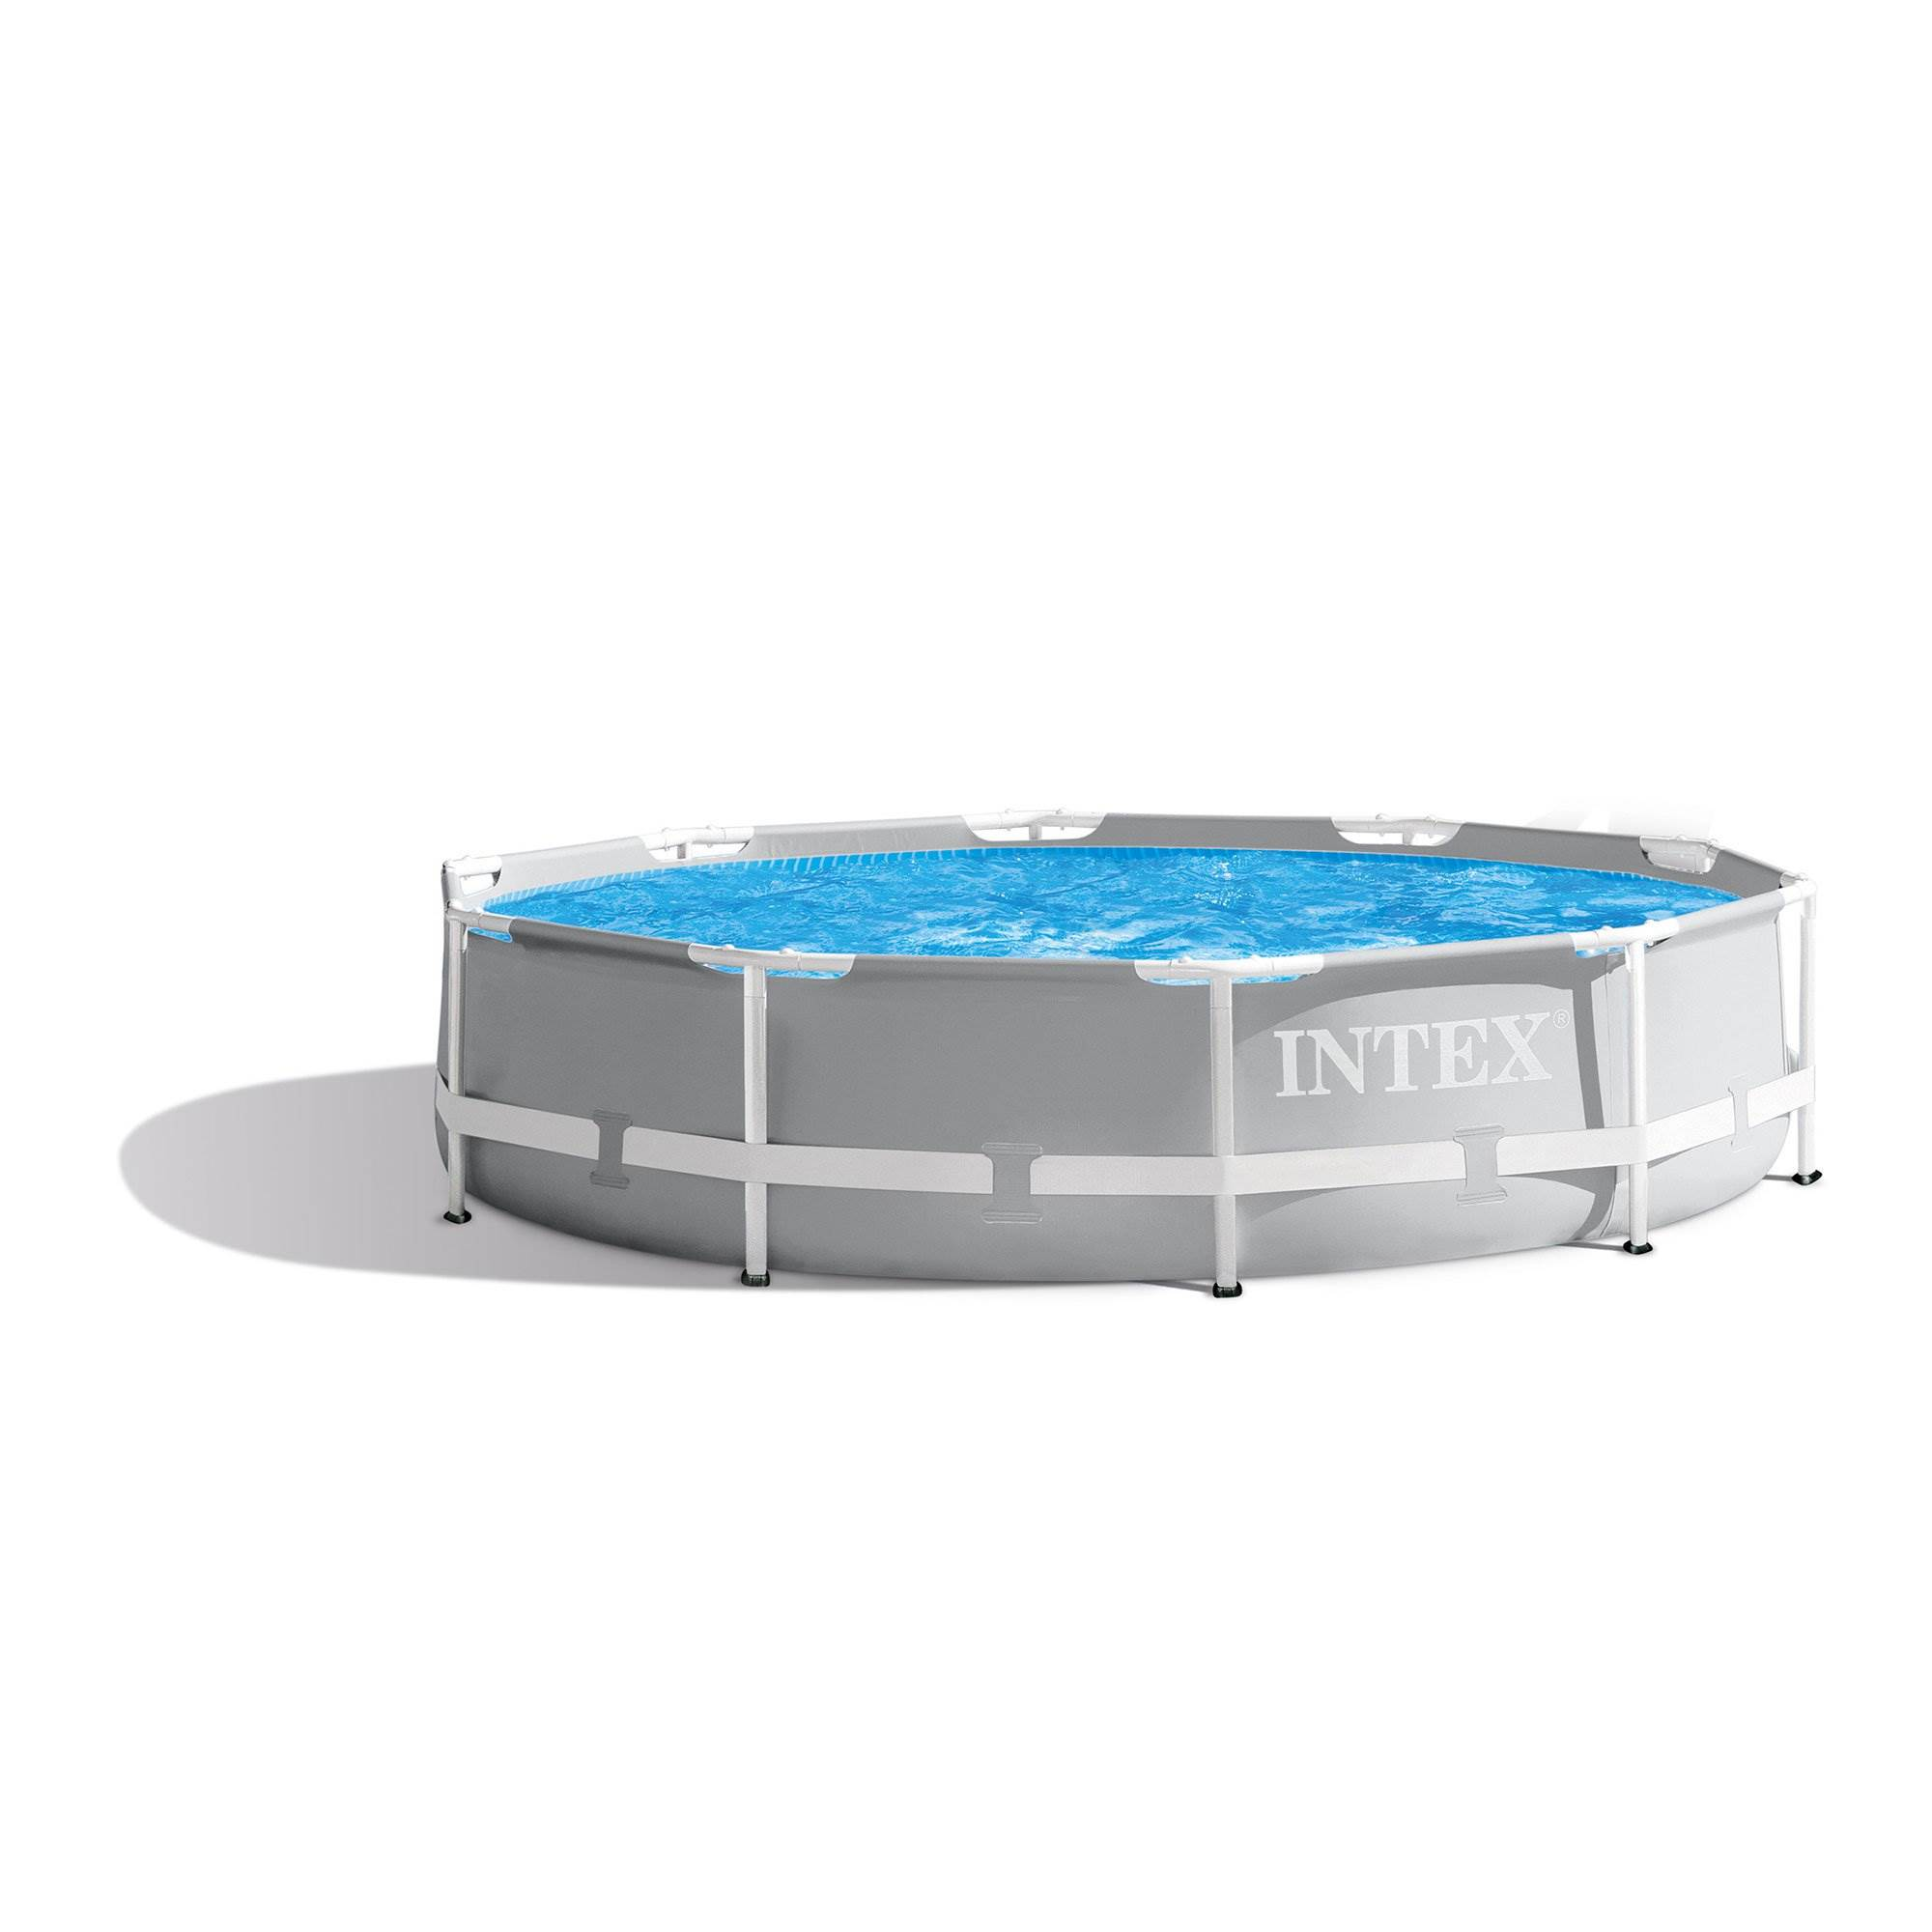 Intex 10 Feet X 30 Inches Prism Frame Above Ground Swimming Pool Open Box 78257267002 Ebay